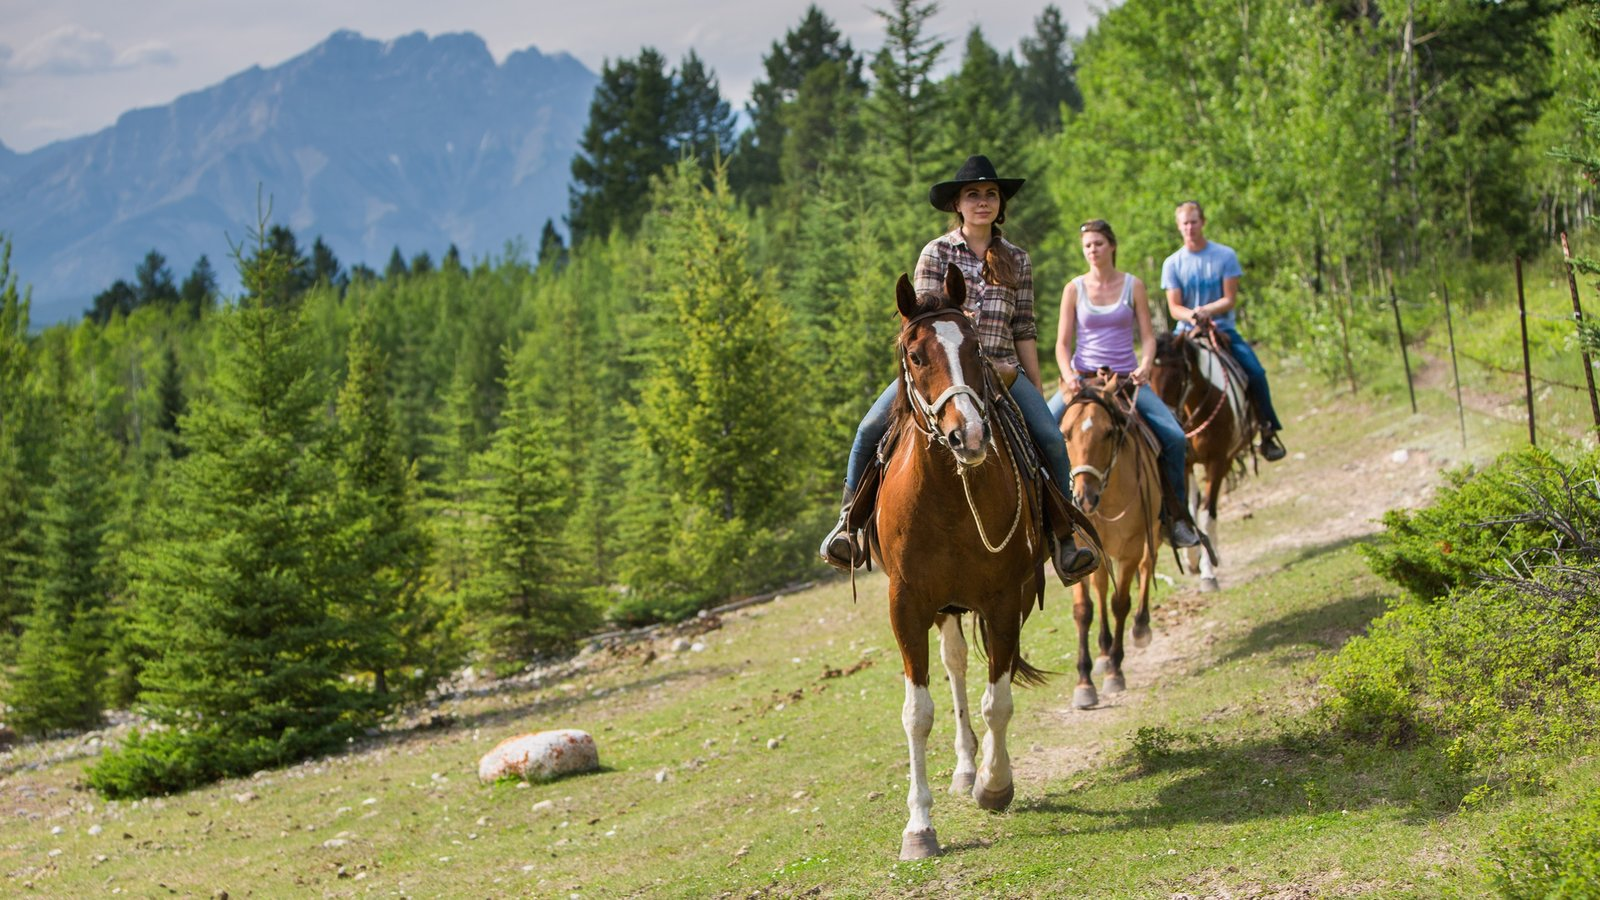 Banff National Park showing horse riding and forest scenes